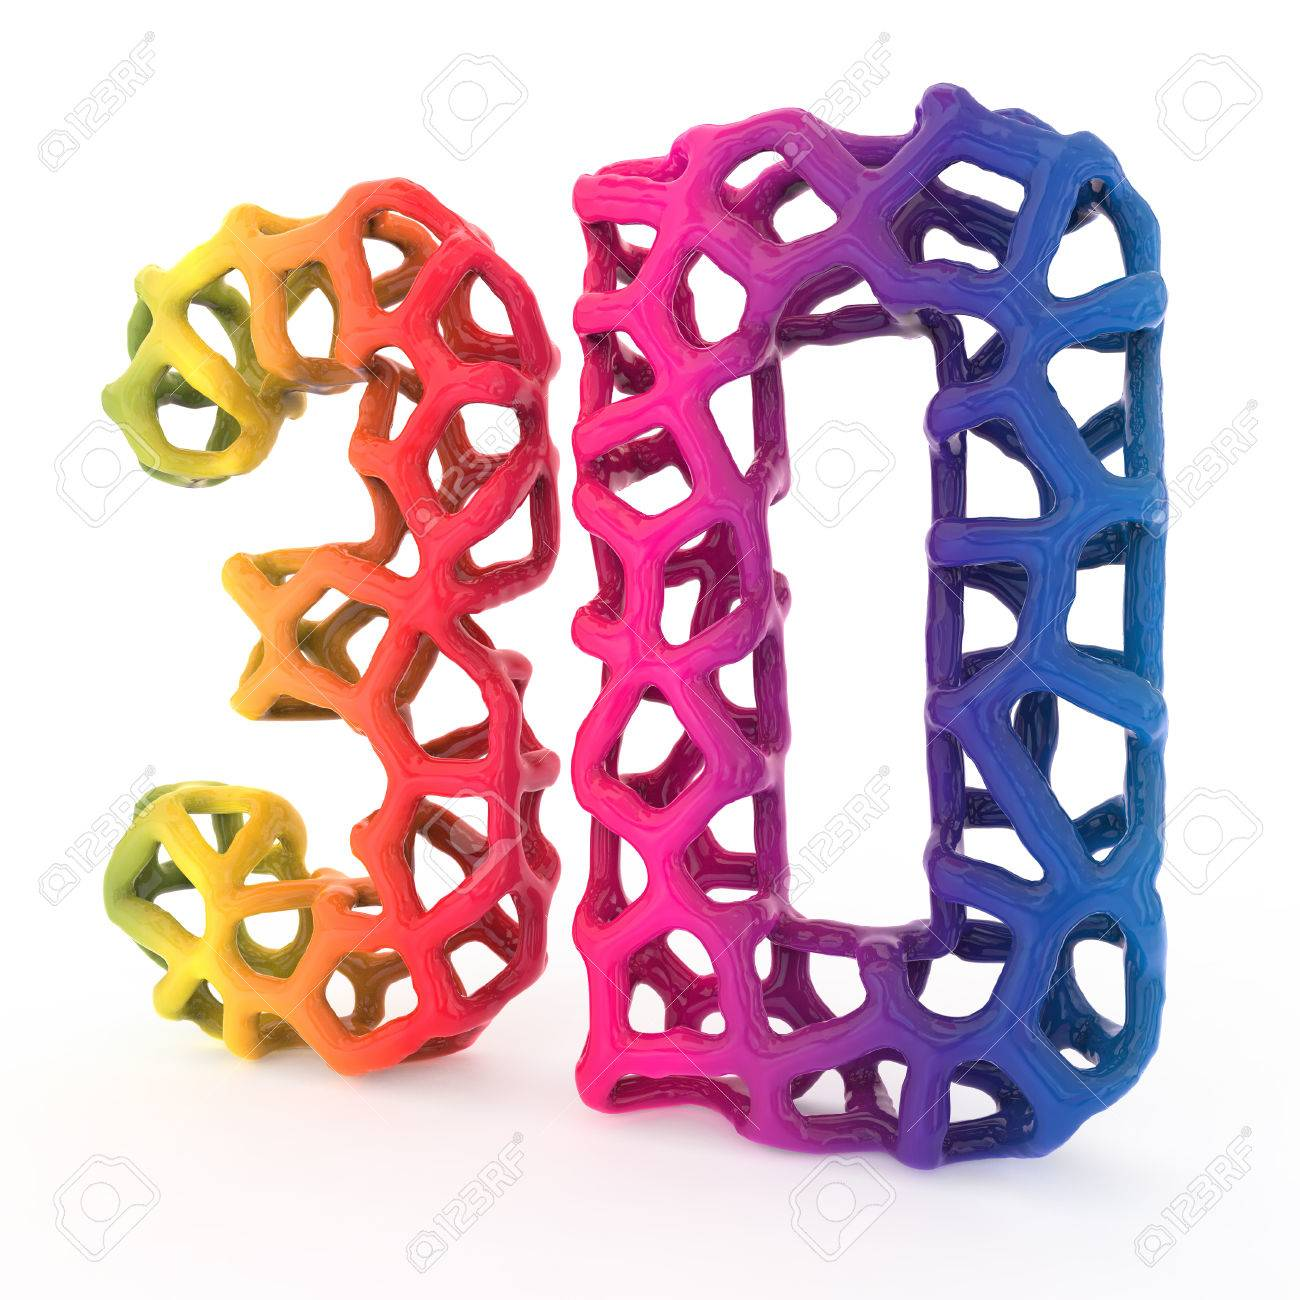 3d printing letters isolated